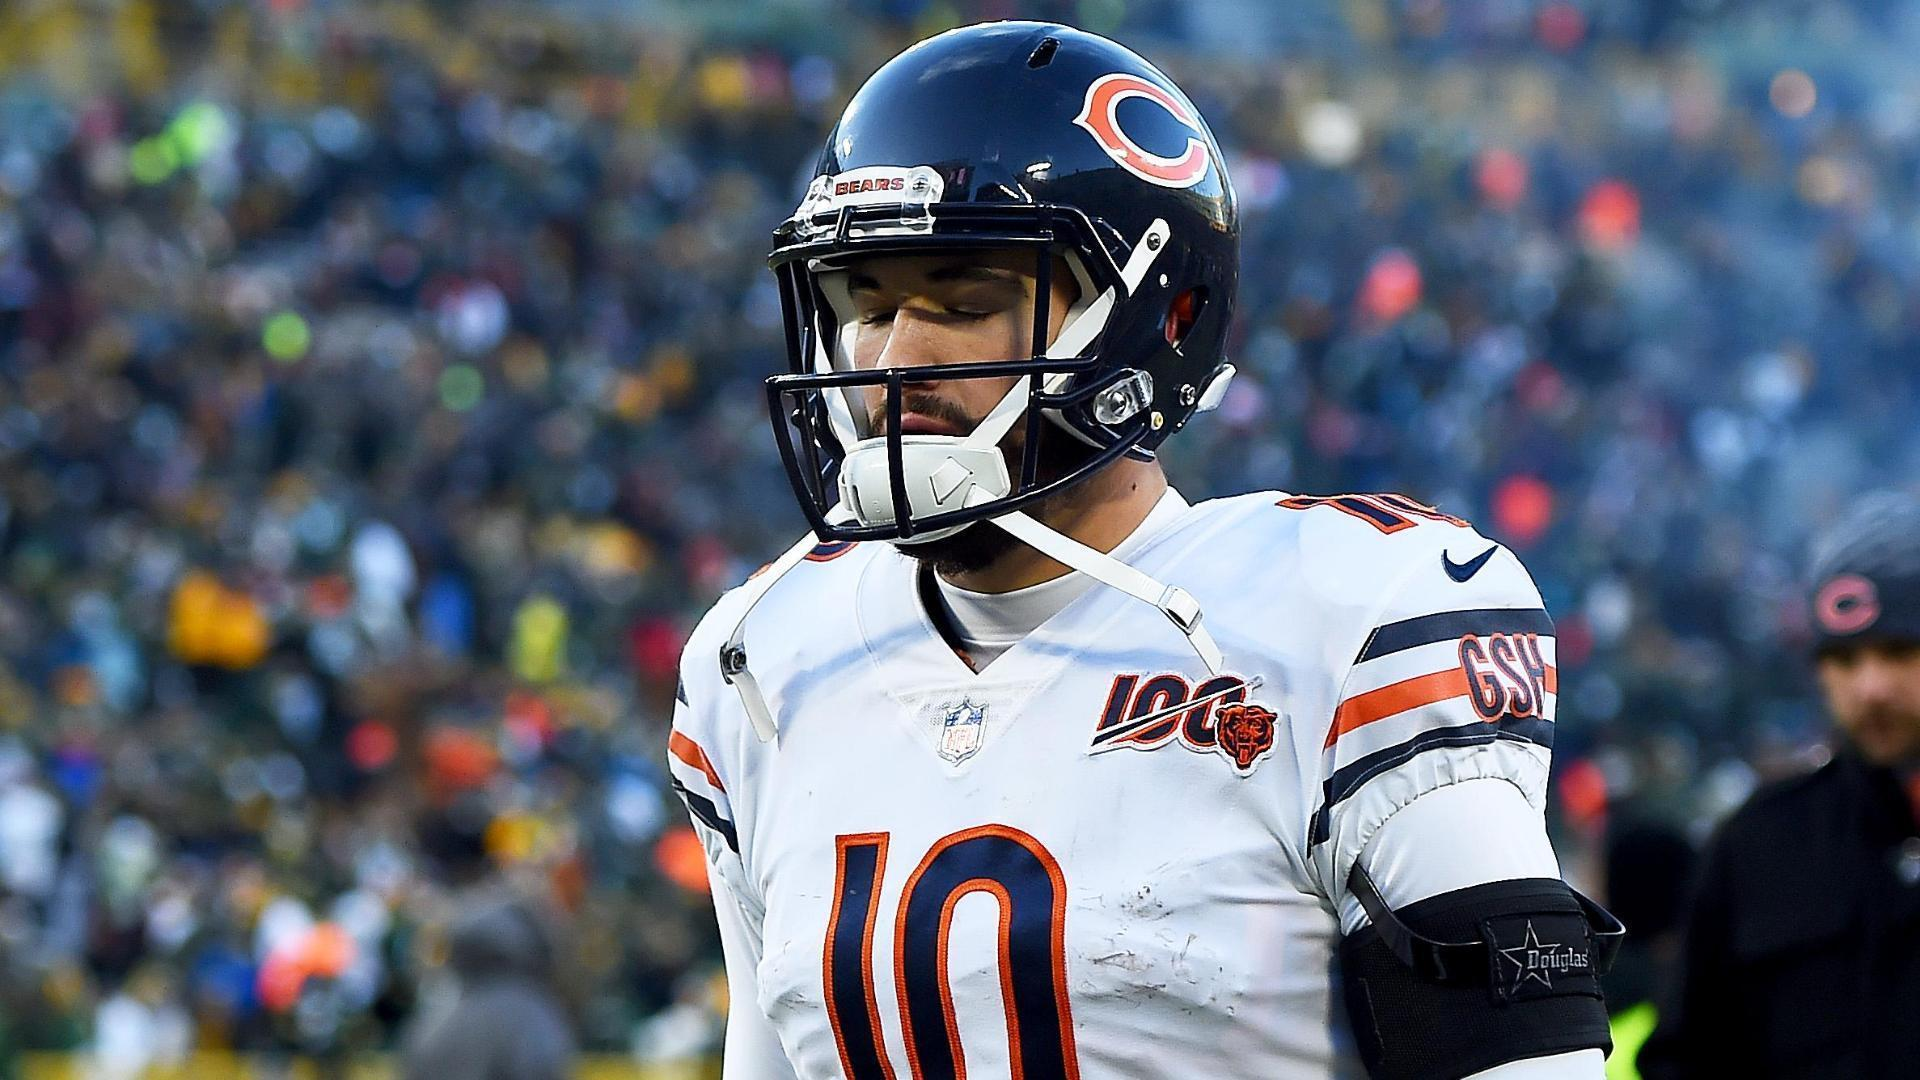 Why it's a longshot for the Bears to exercise Trubisky's option